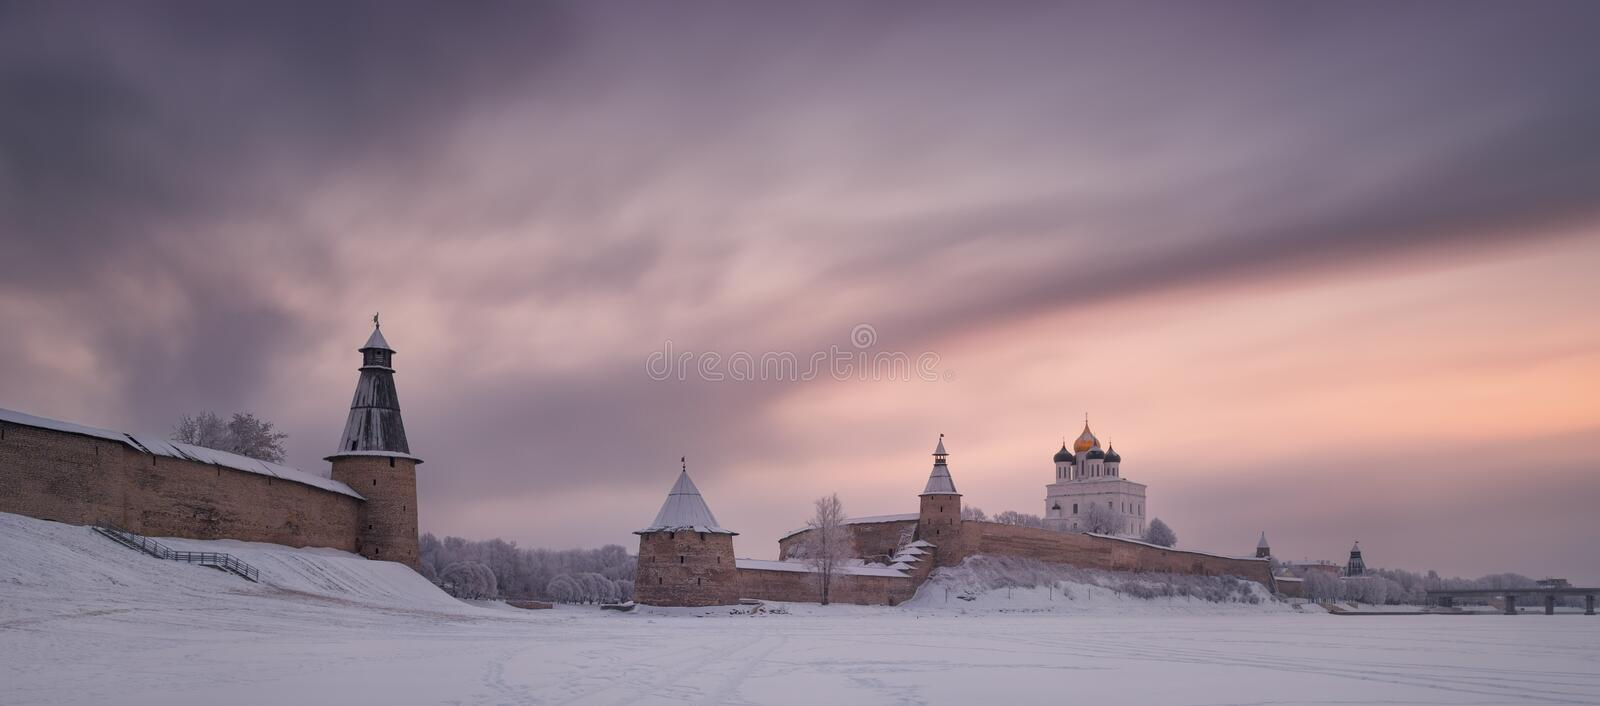 Pskov Kremlin Krom - Historical And Architectural Center Of The Ancient Russian City Pskov In The Winter Time. View From The F stock photos